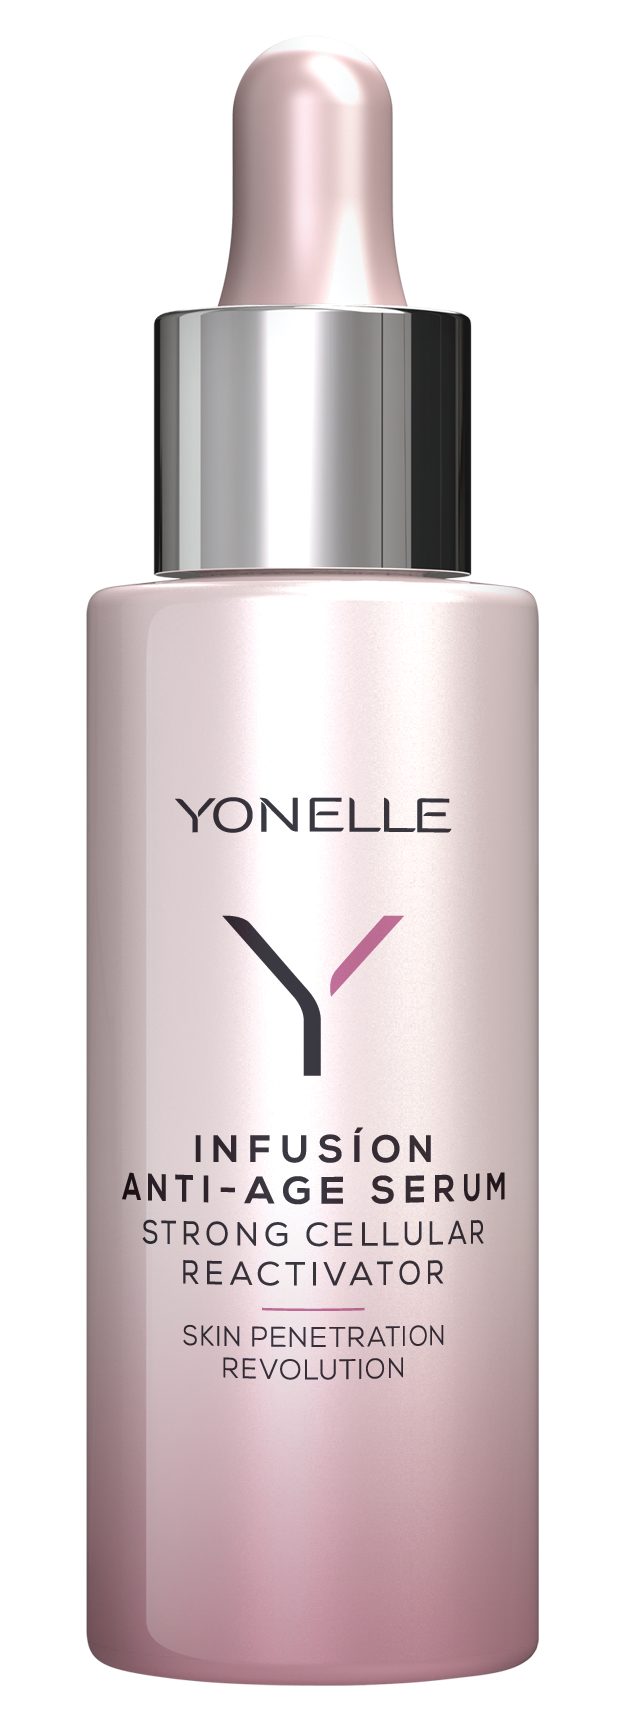 anti-age-serum-packshot